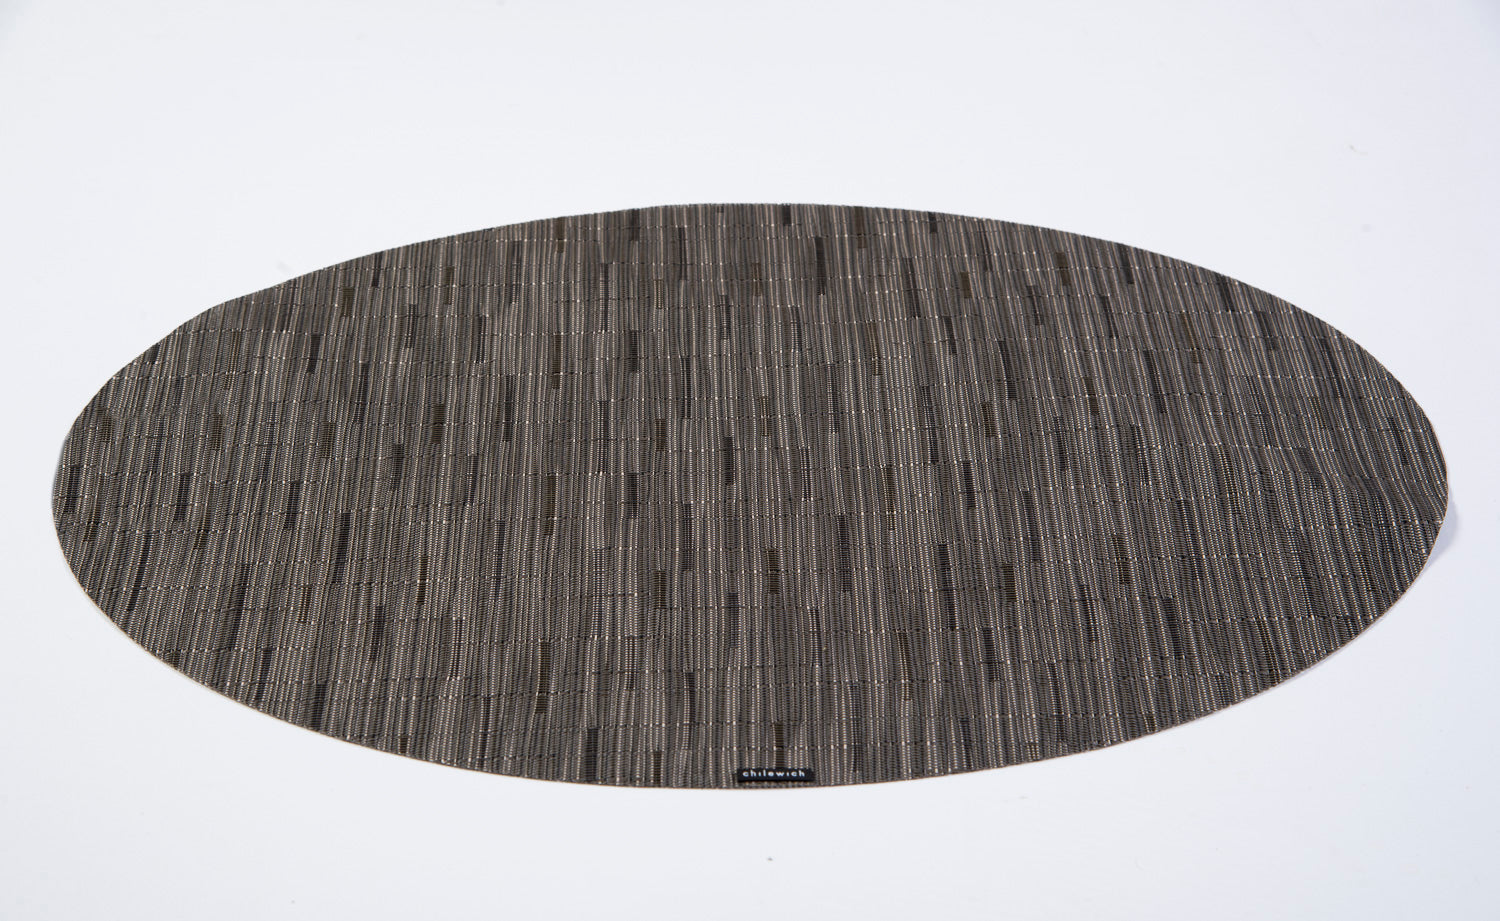 Chilewich grey bamboo oval placemat